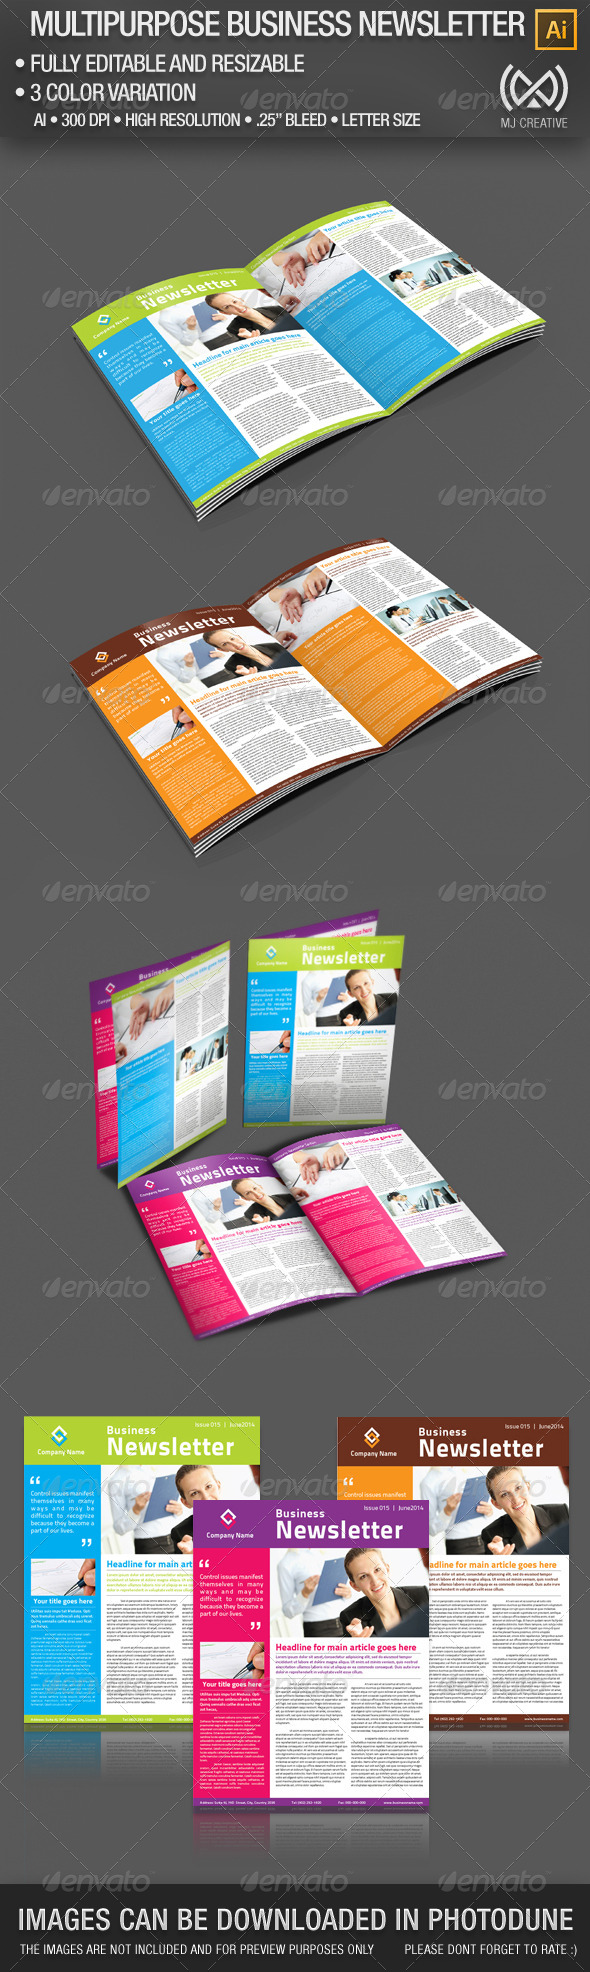 Newsletter Templates From Graphicriver Page